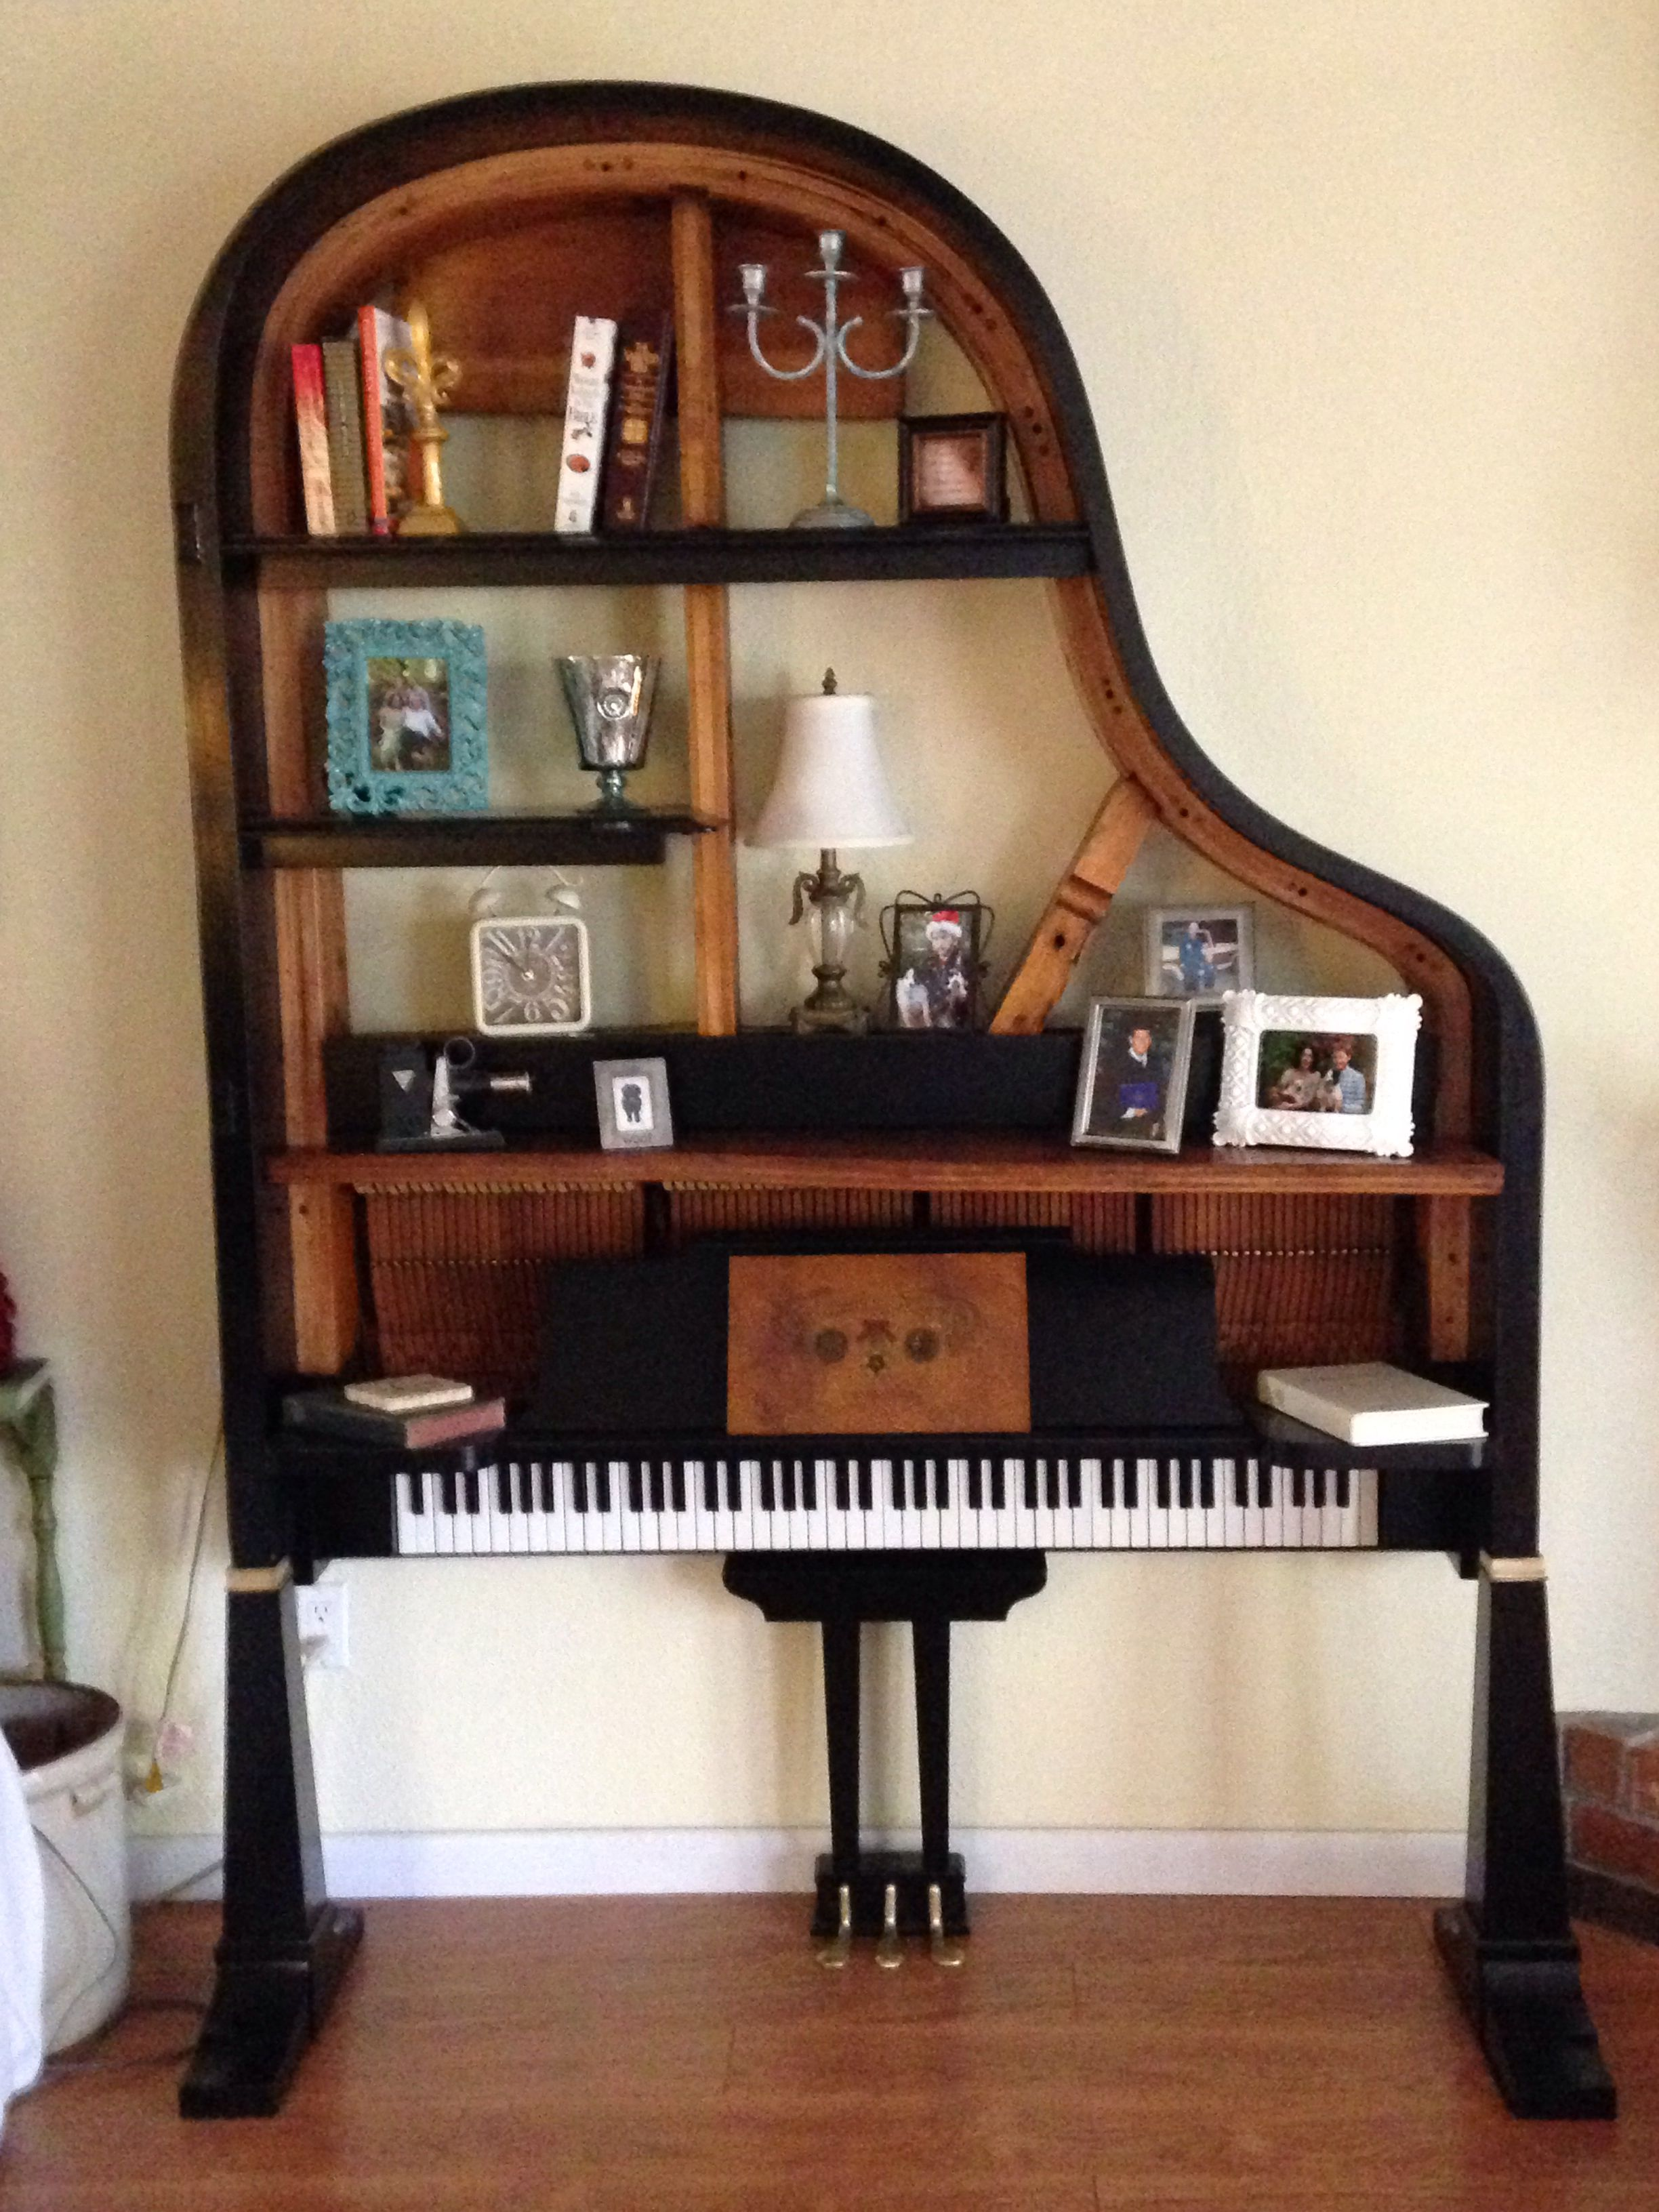 15 Steps To Being An Amazing Pianist Muebles De Musica